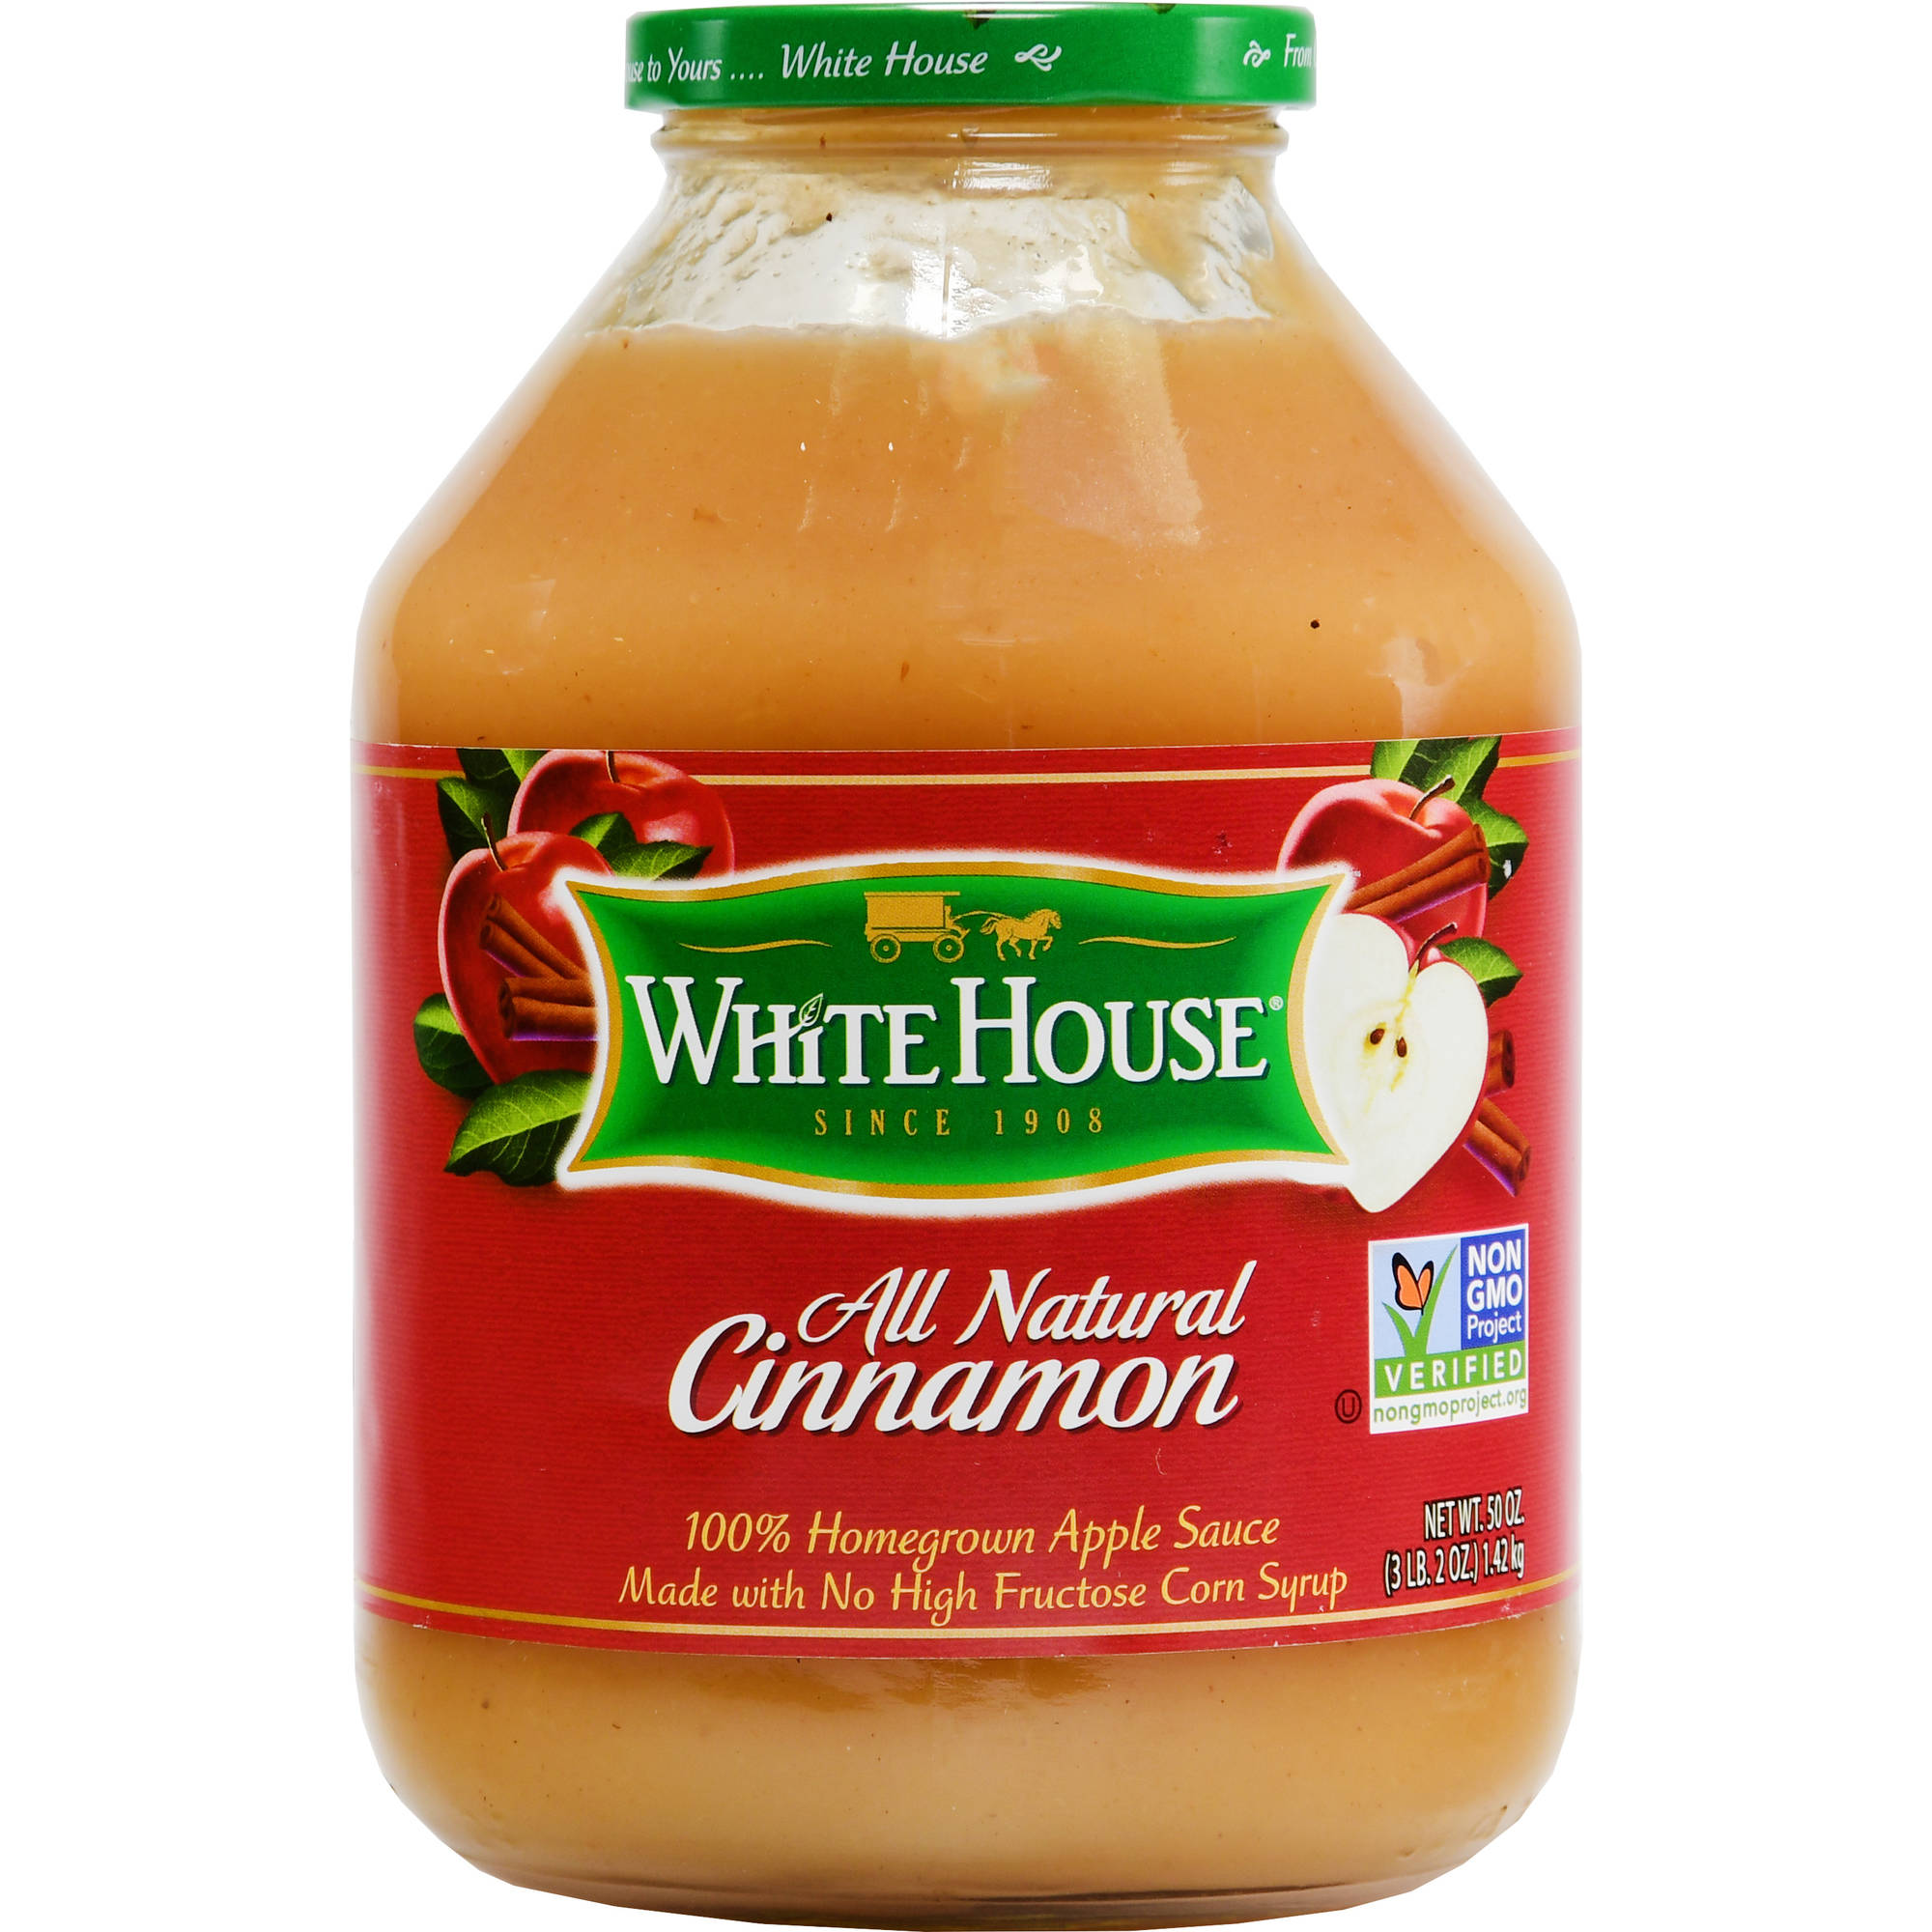 White House Cinnamon Applesauce, 46 fl oz